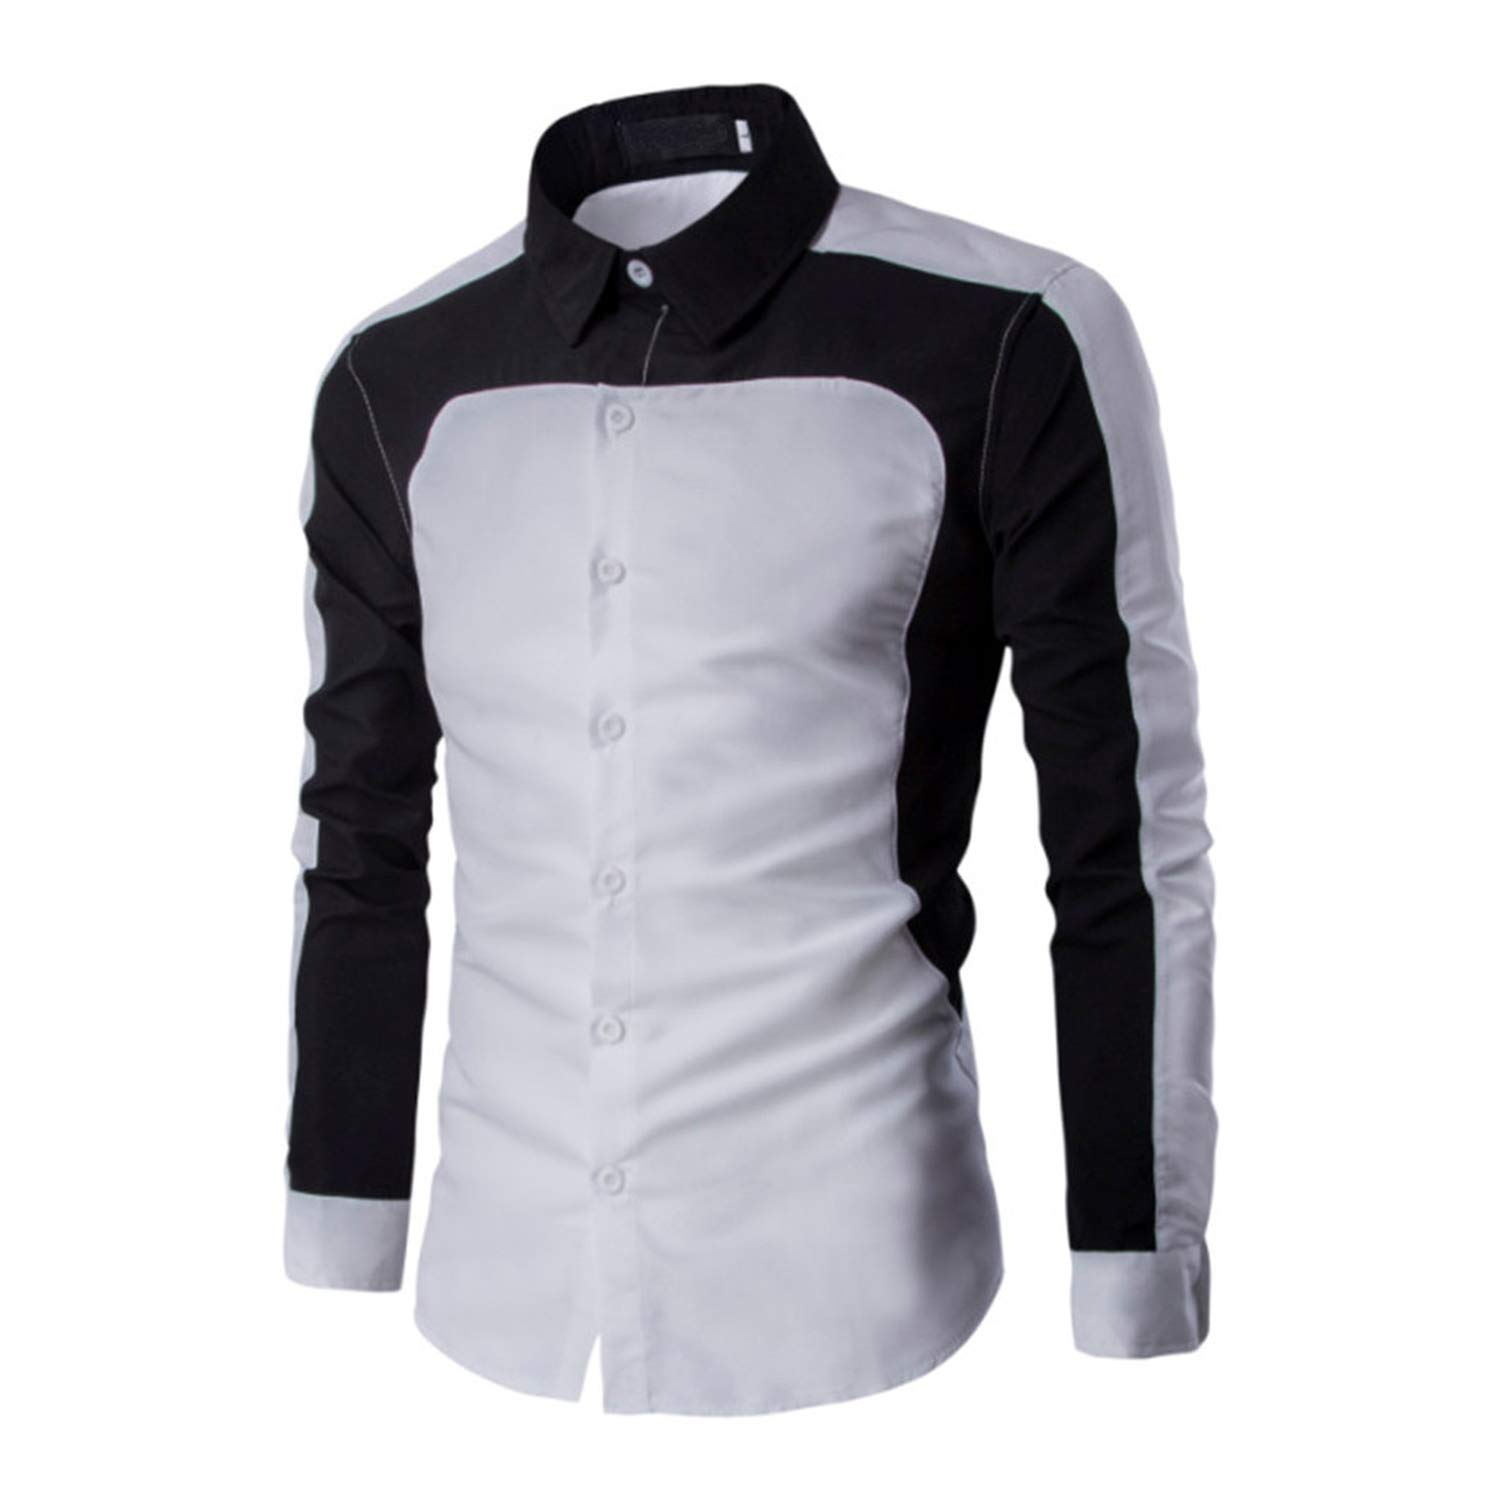 645a7cb6 UELDJF1 Contrast color Shirt Men Long Long Long Sleeve Splicing Top  Streetwear Casual Blouse Shirts Male Slim Fit Clothes,White,XXL,United  States 4a436c